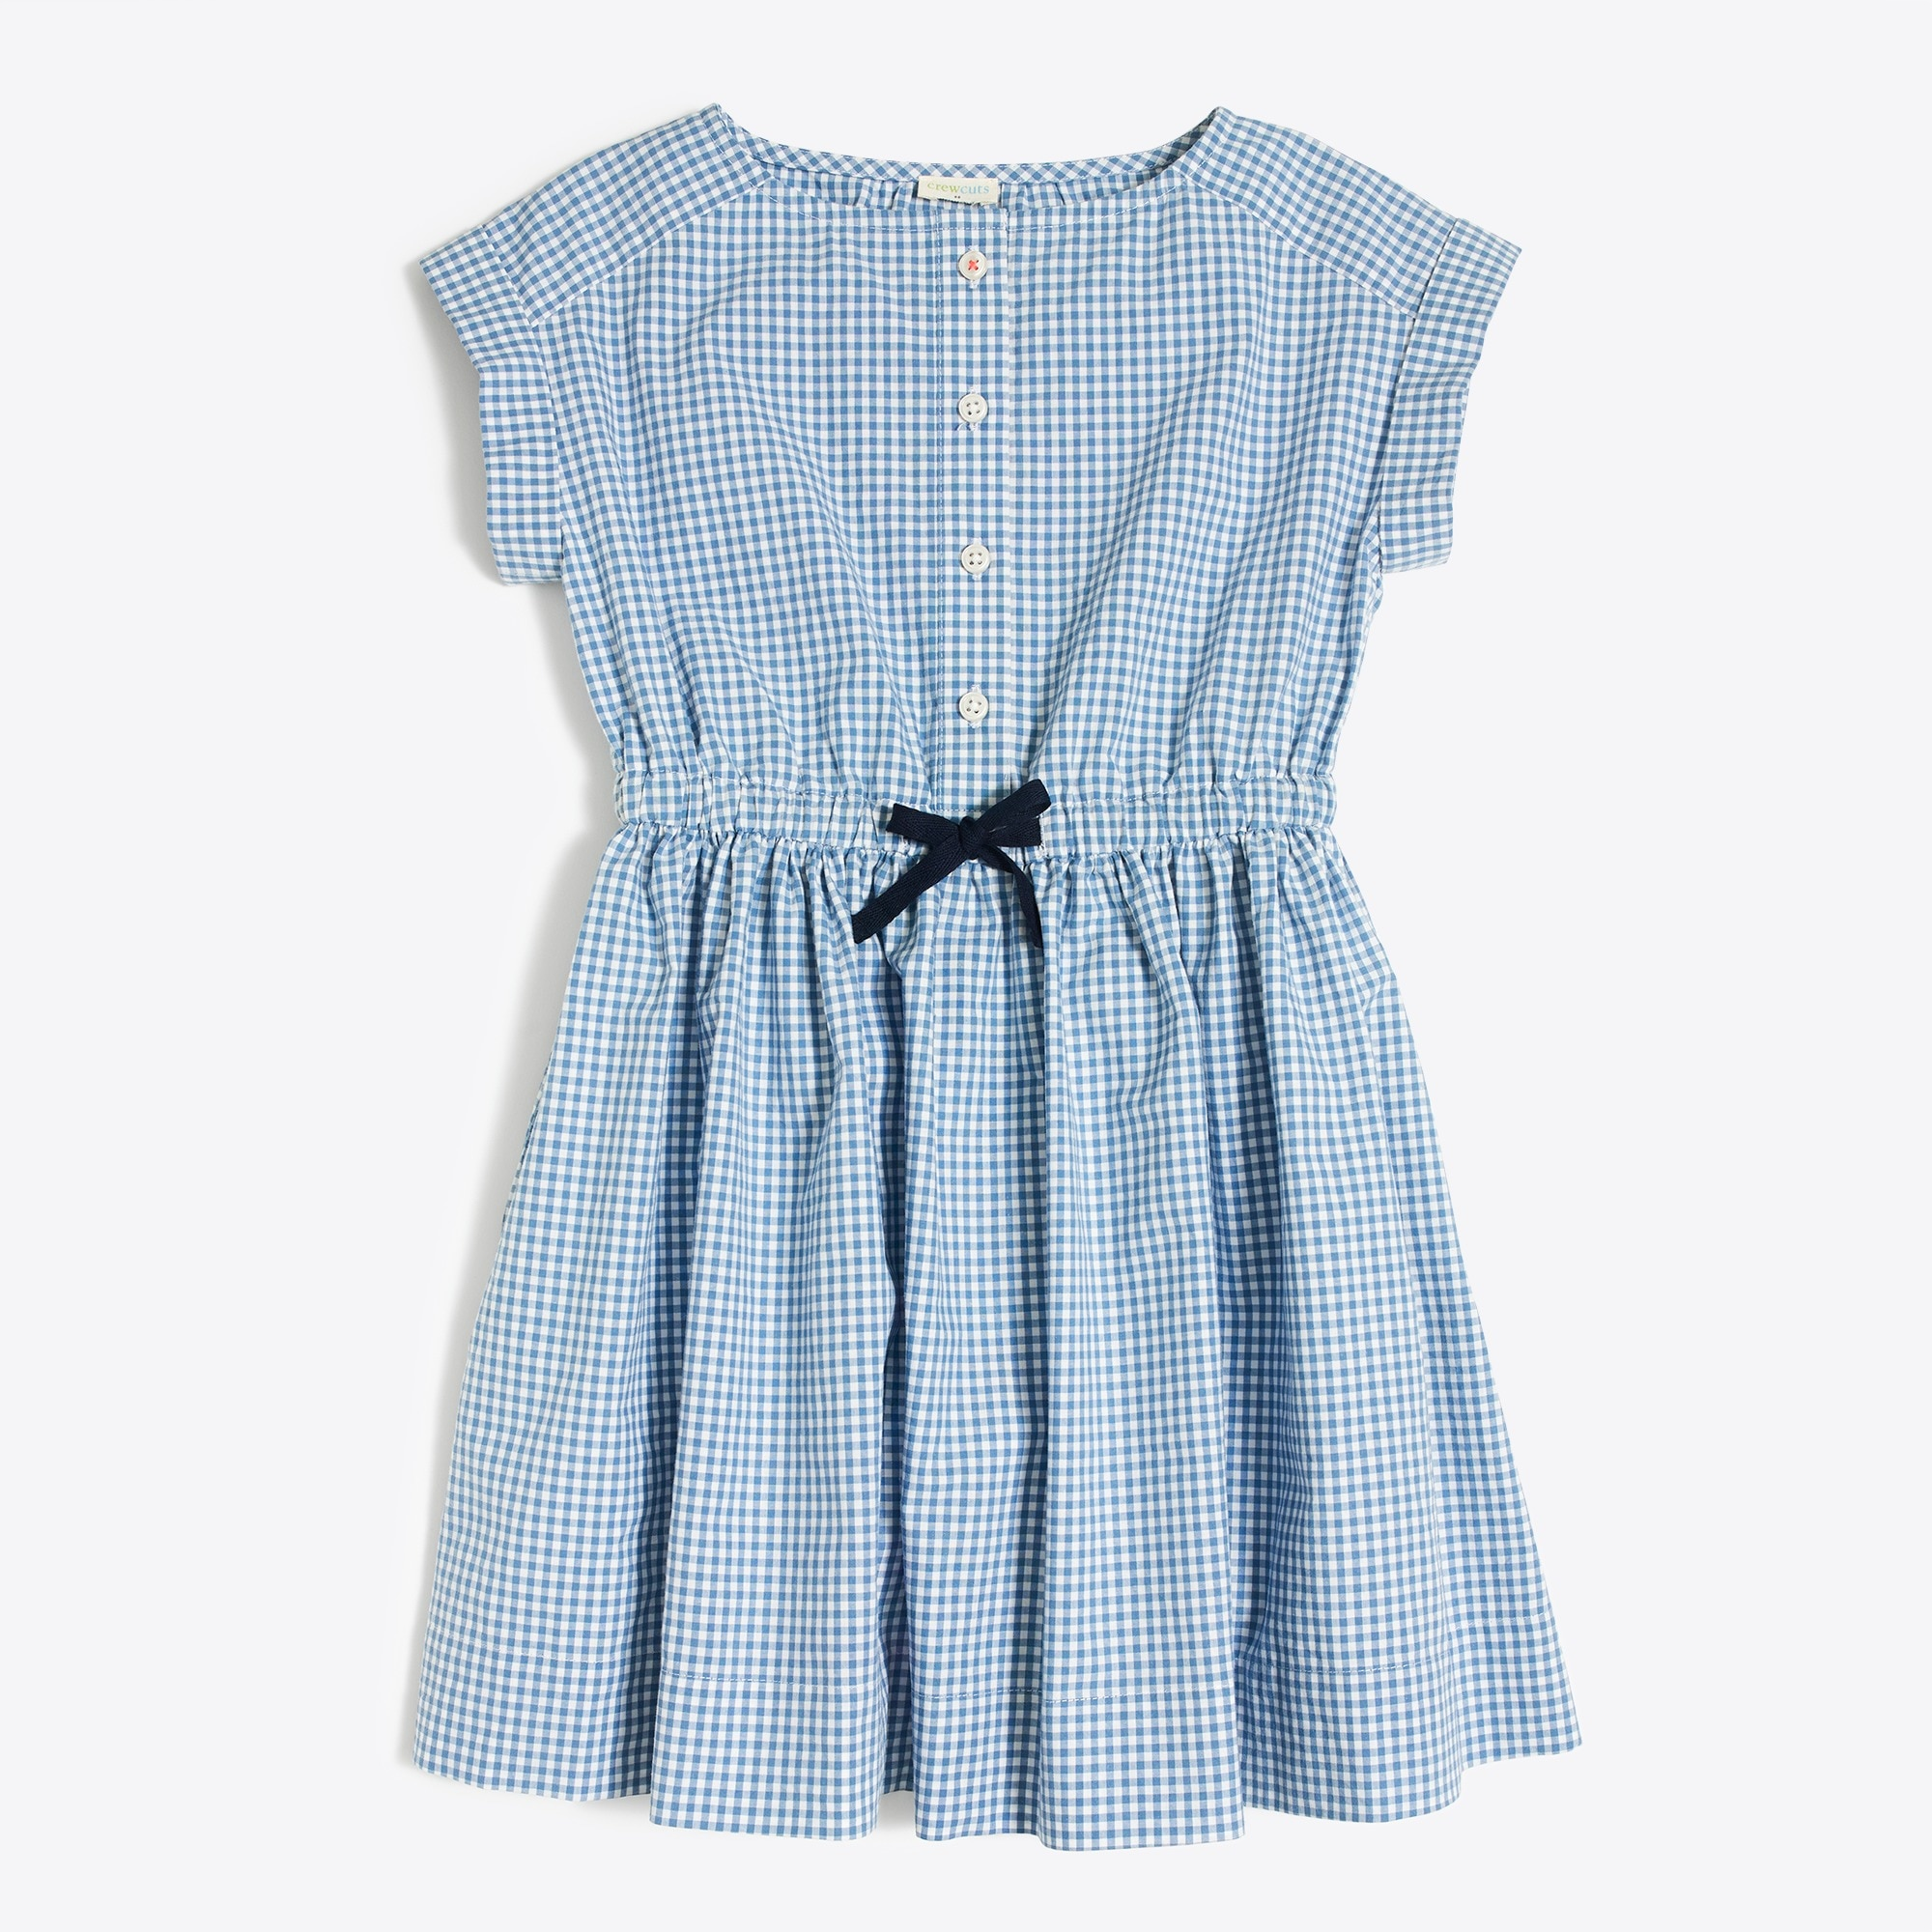 Girls' short-sleeve gingham shirt dress